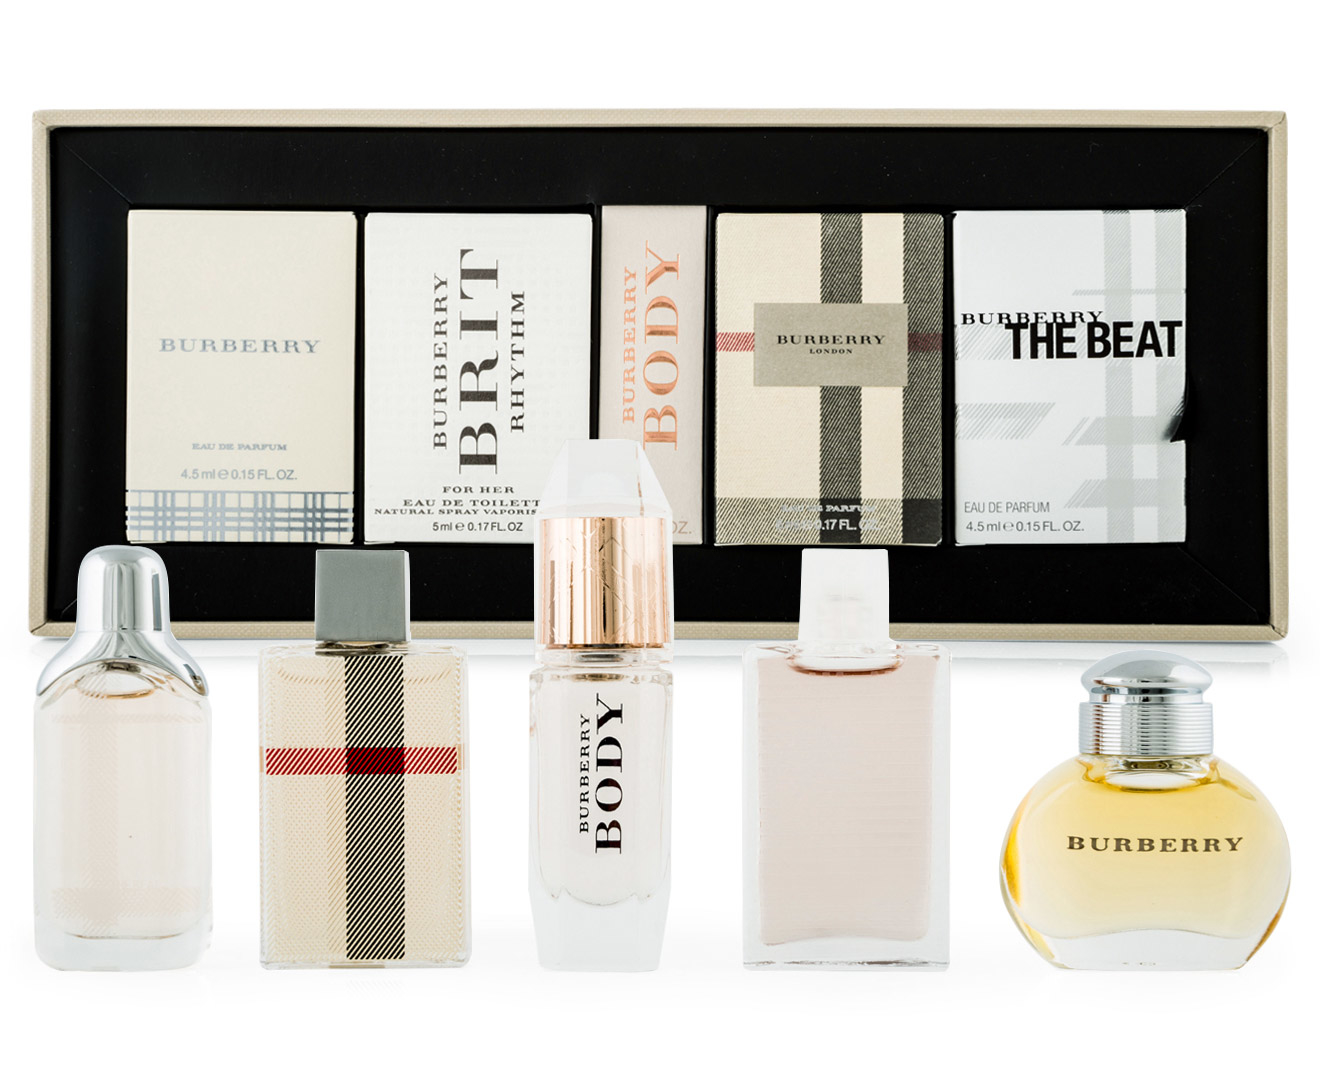 Burberry Miniature Collection 5 Piece Gift Set Great